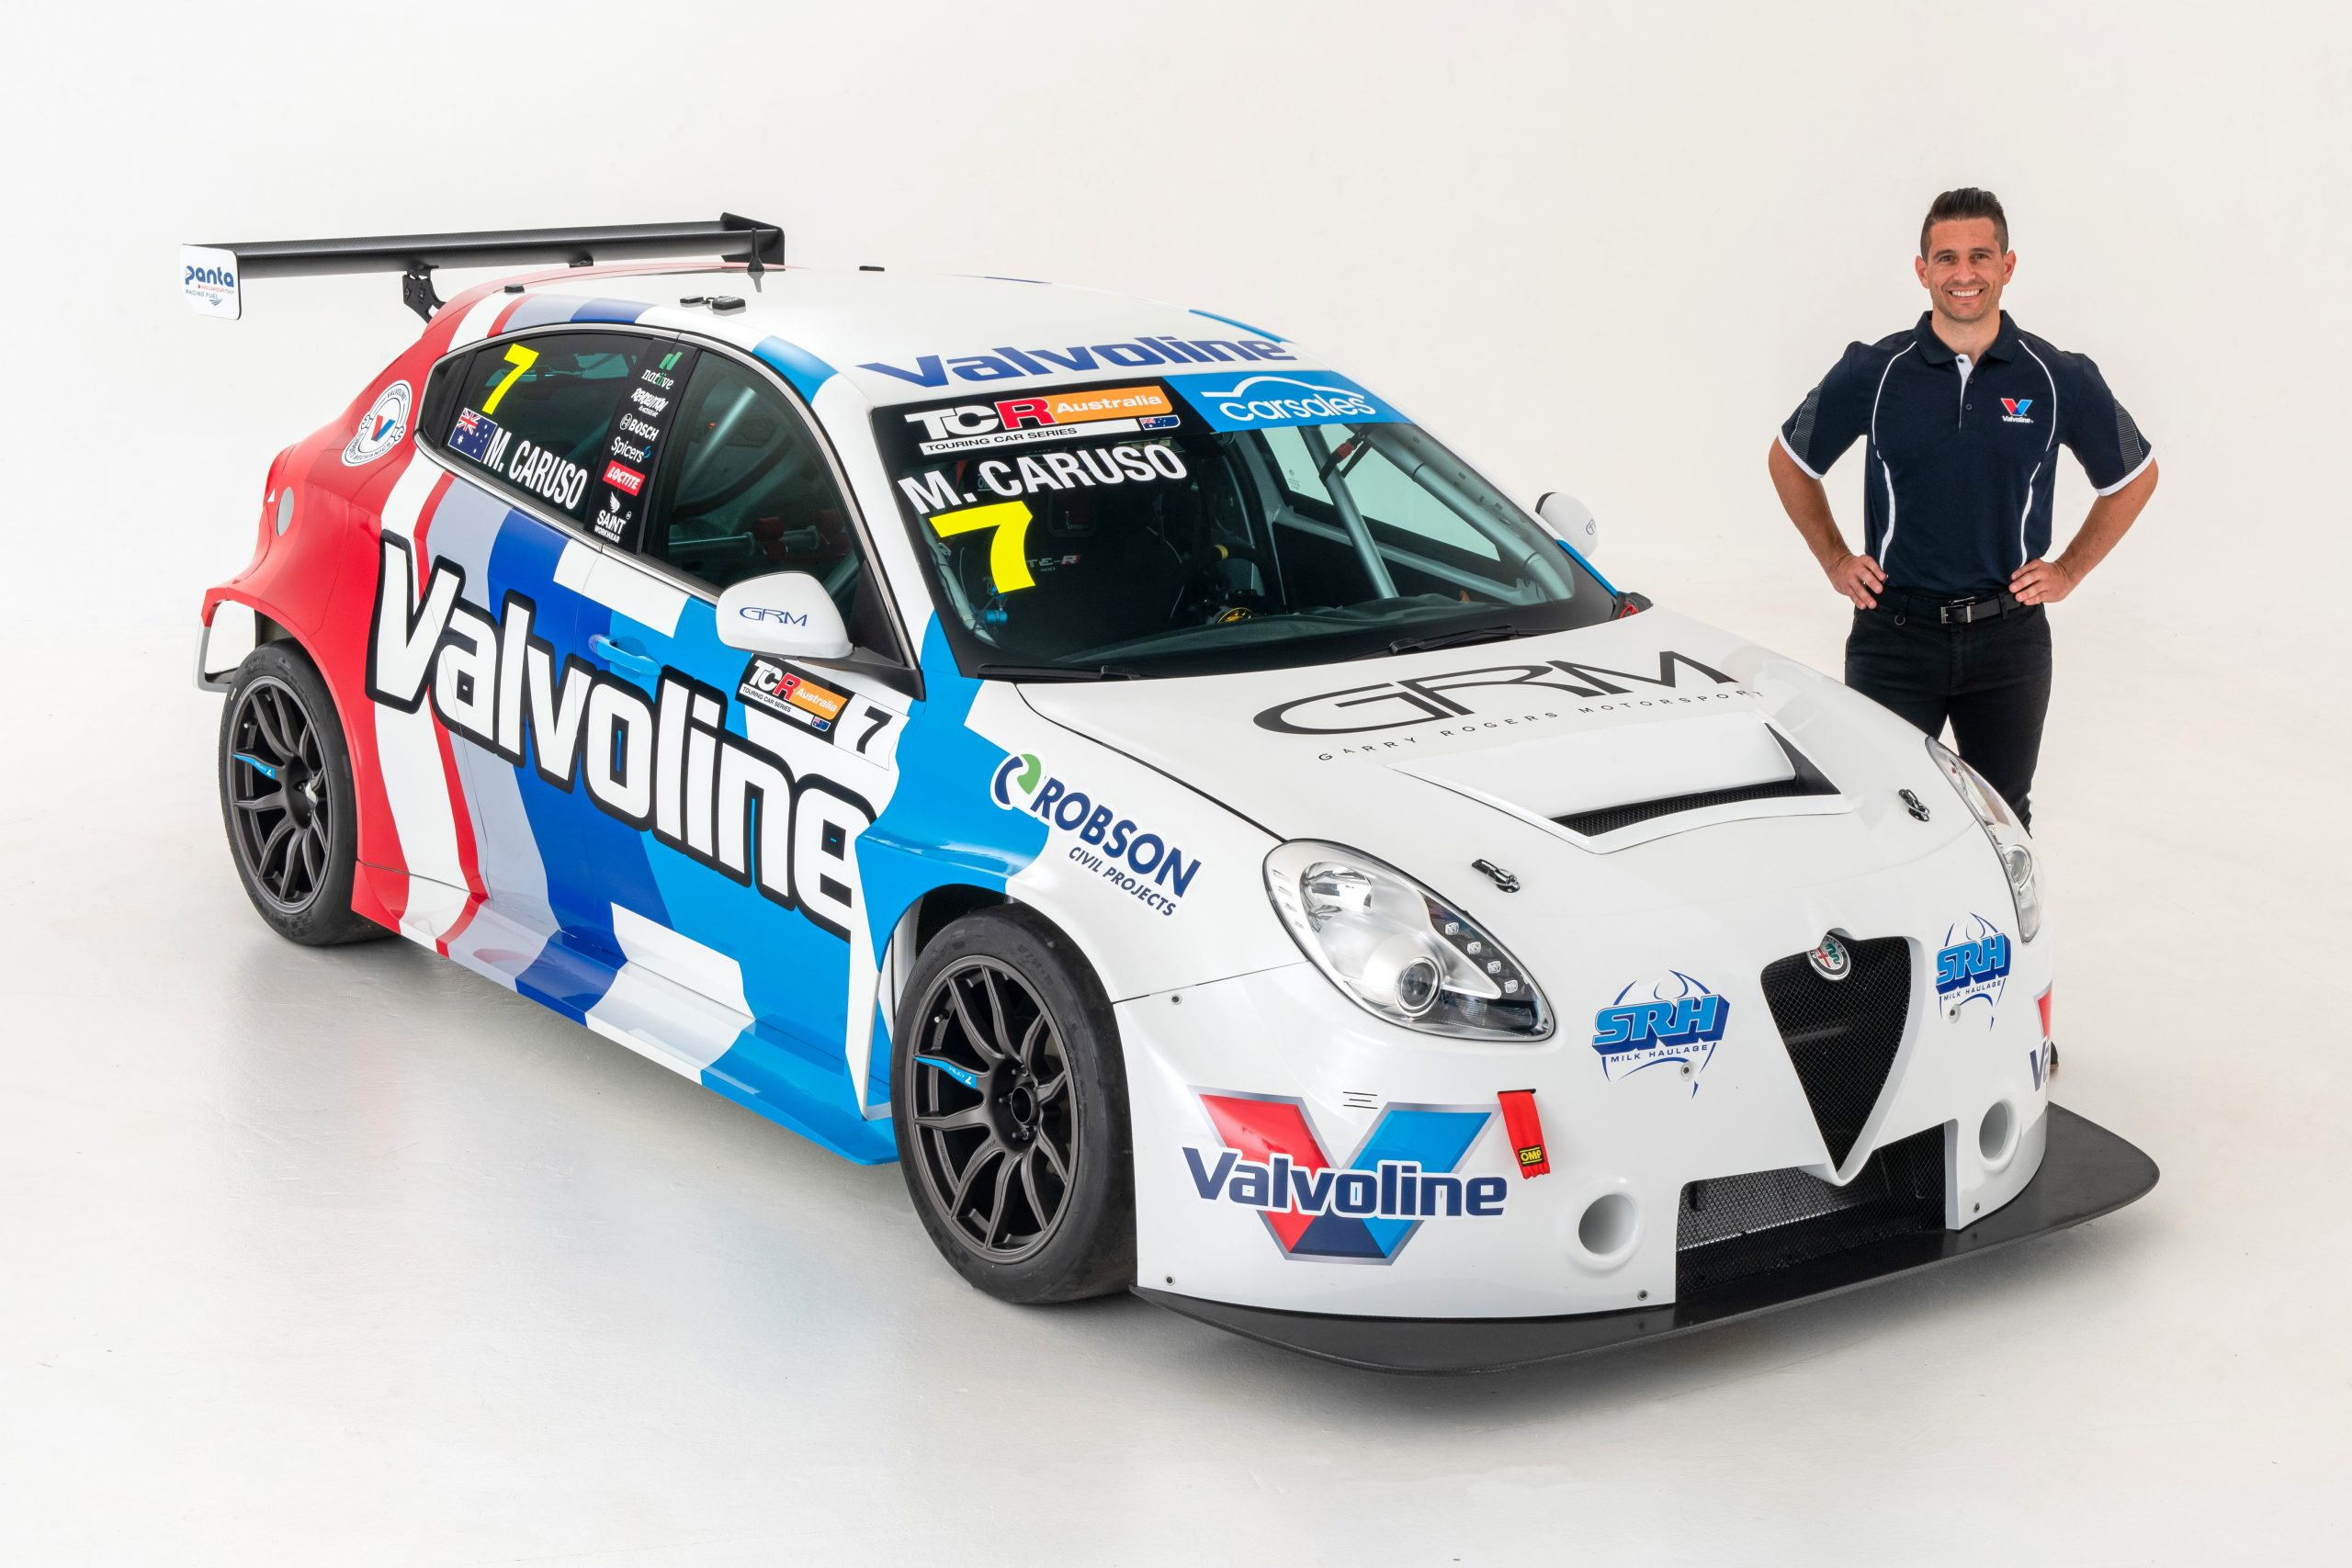 Caruso, Valvoline and GRM roll over two-year TCR Australia plan